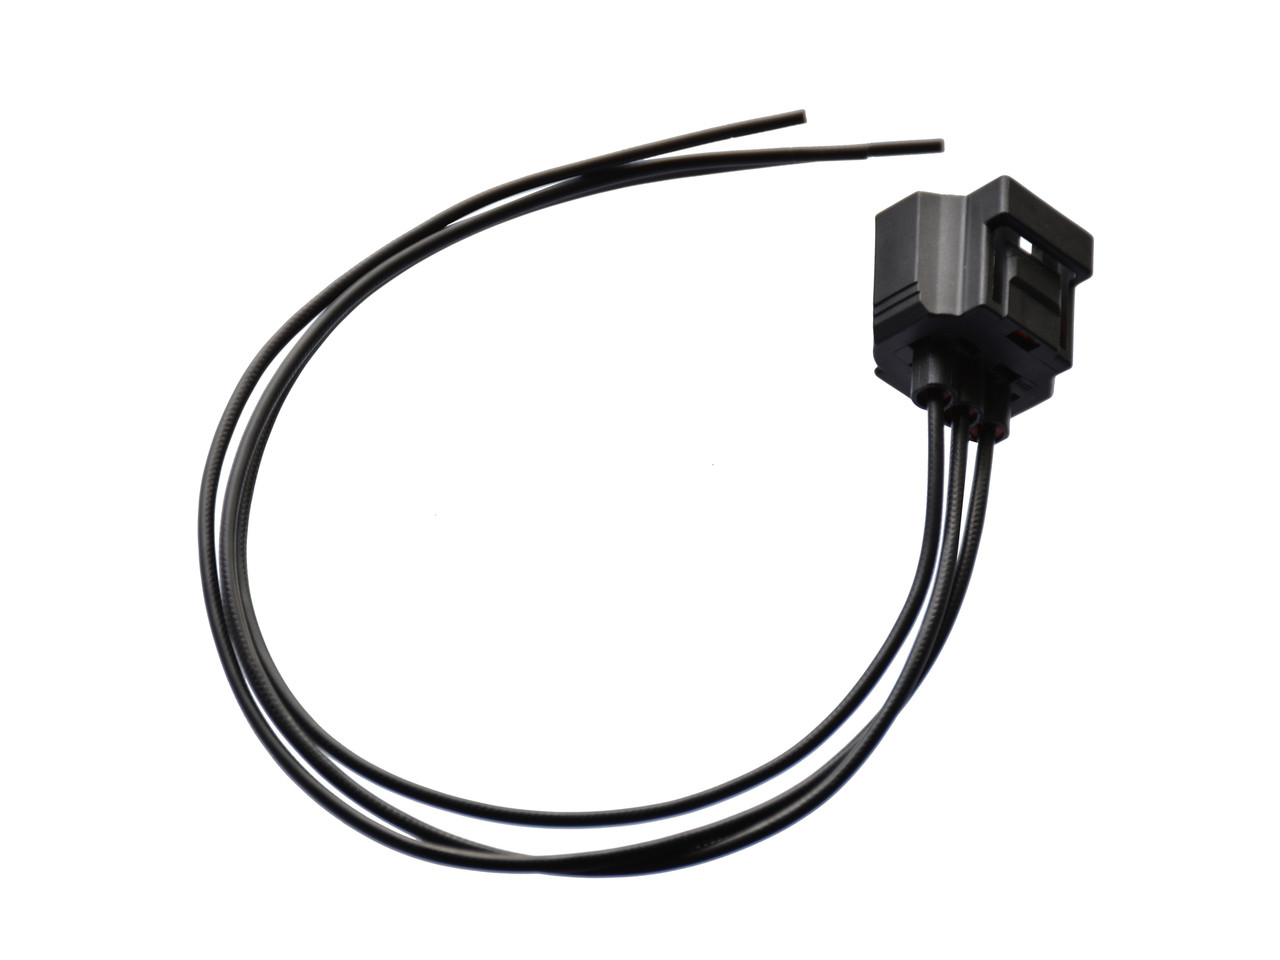 small resolution of ford alternator connector 3 wire plug mustang crown victoria wpt118 ford 3 wire alternator connector plug